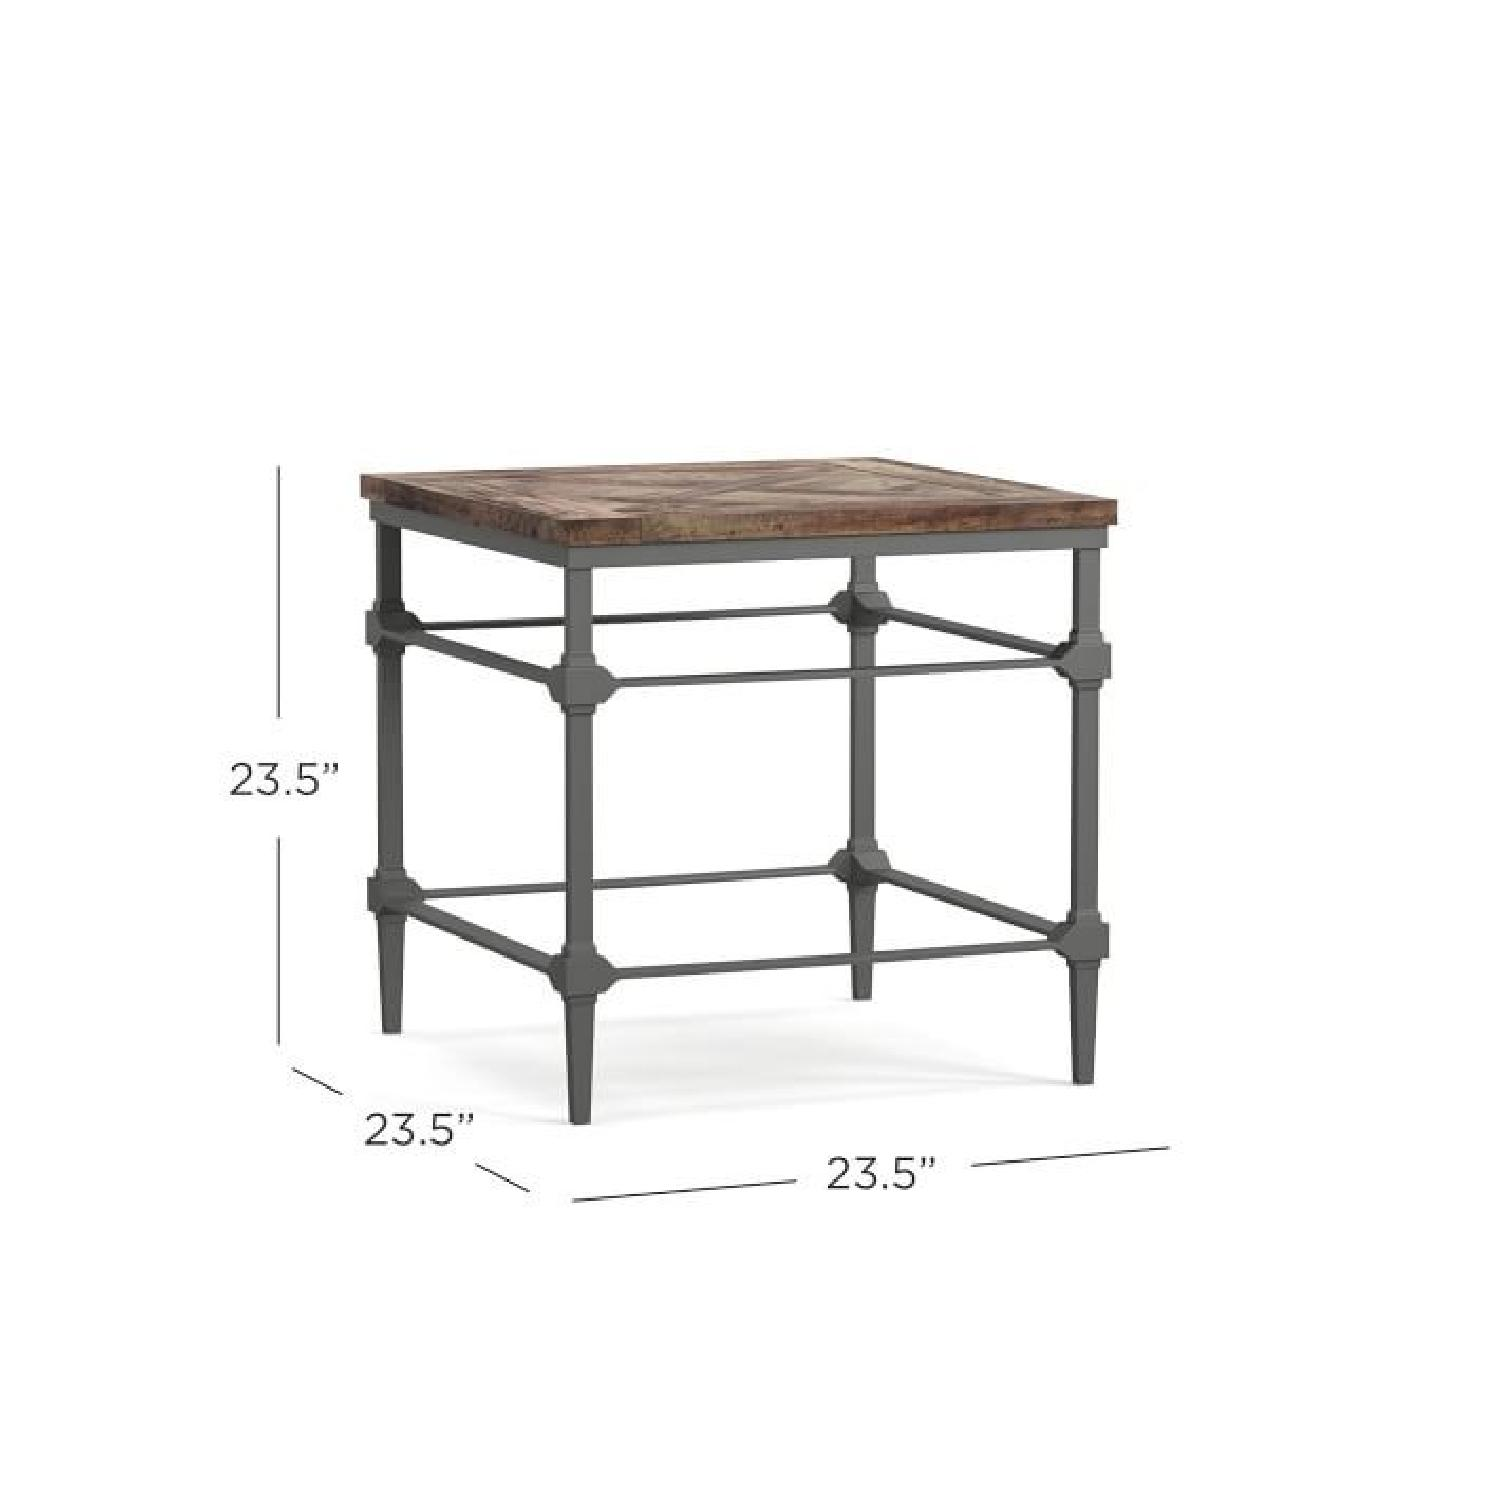 Pottery Barn Parquet Reclaimed Wood End Table-1